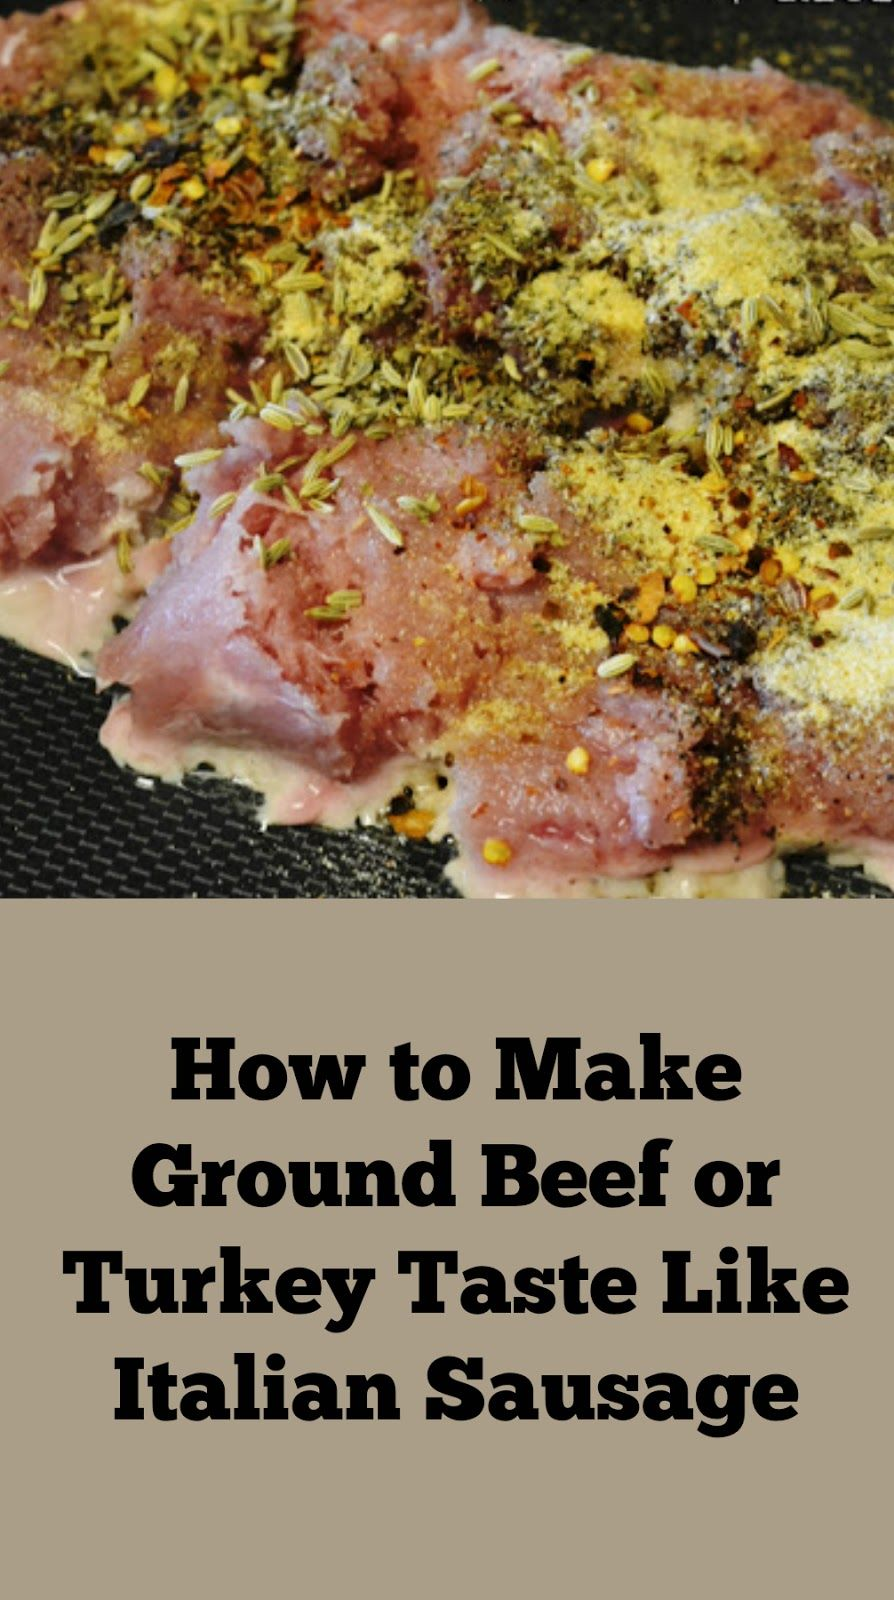 How to Make Ground Meat Taste Like Italian Sausage